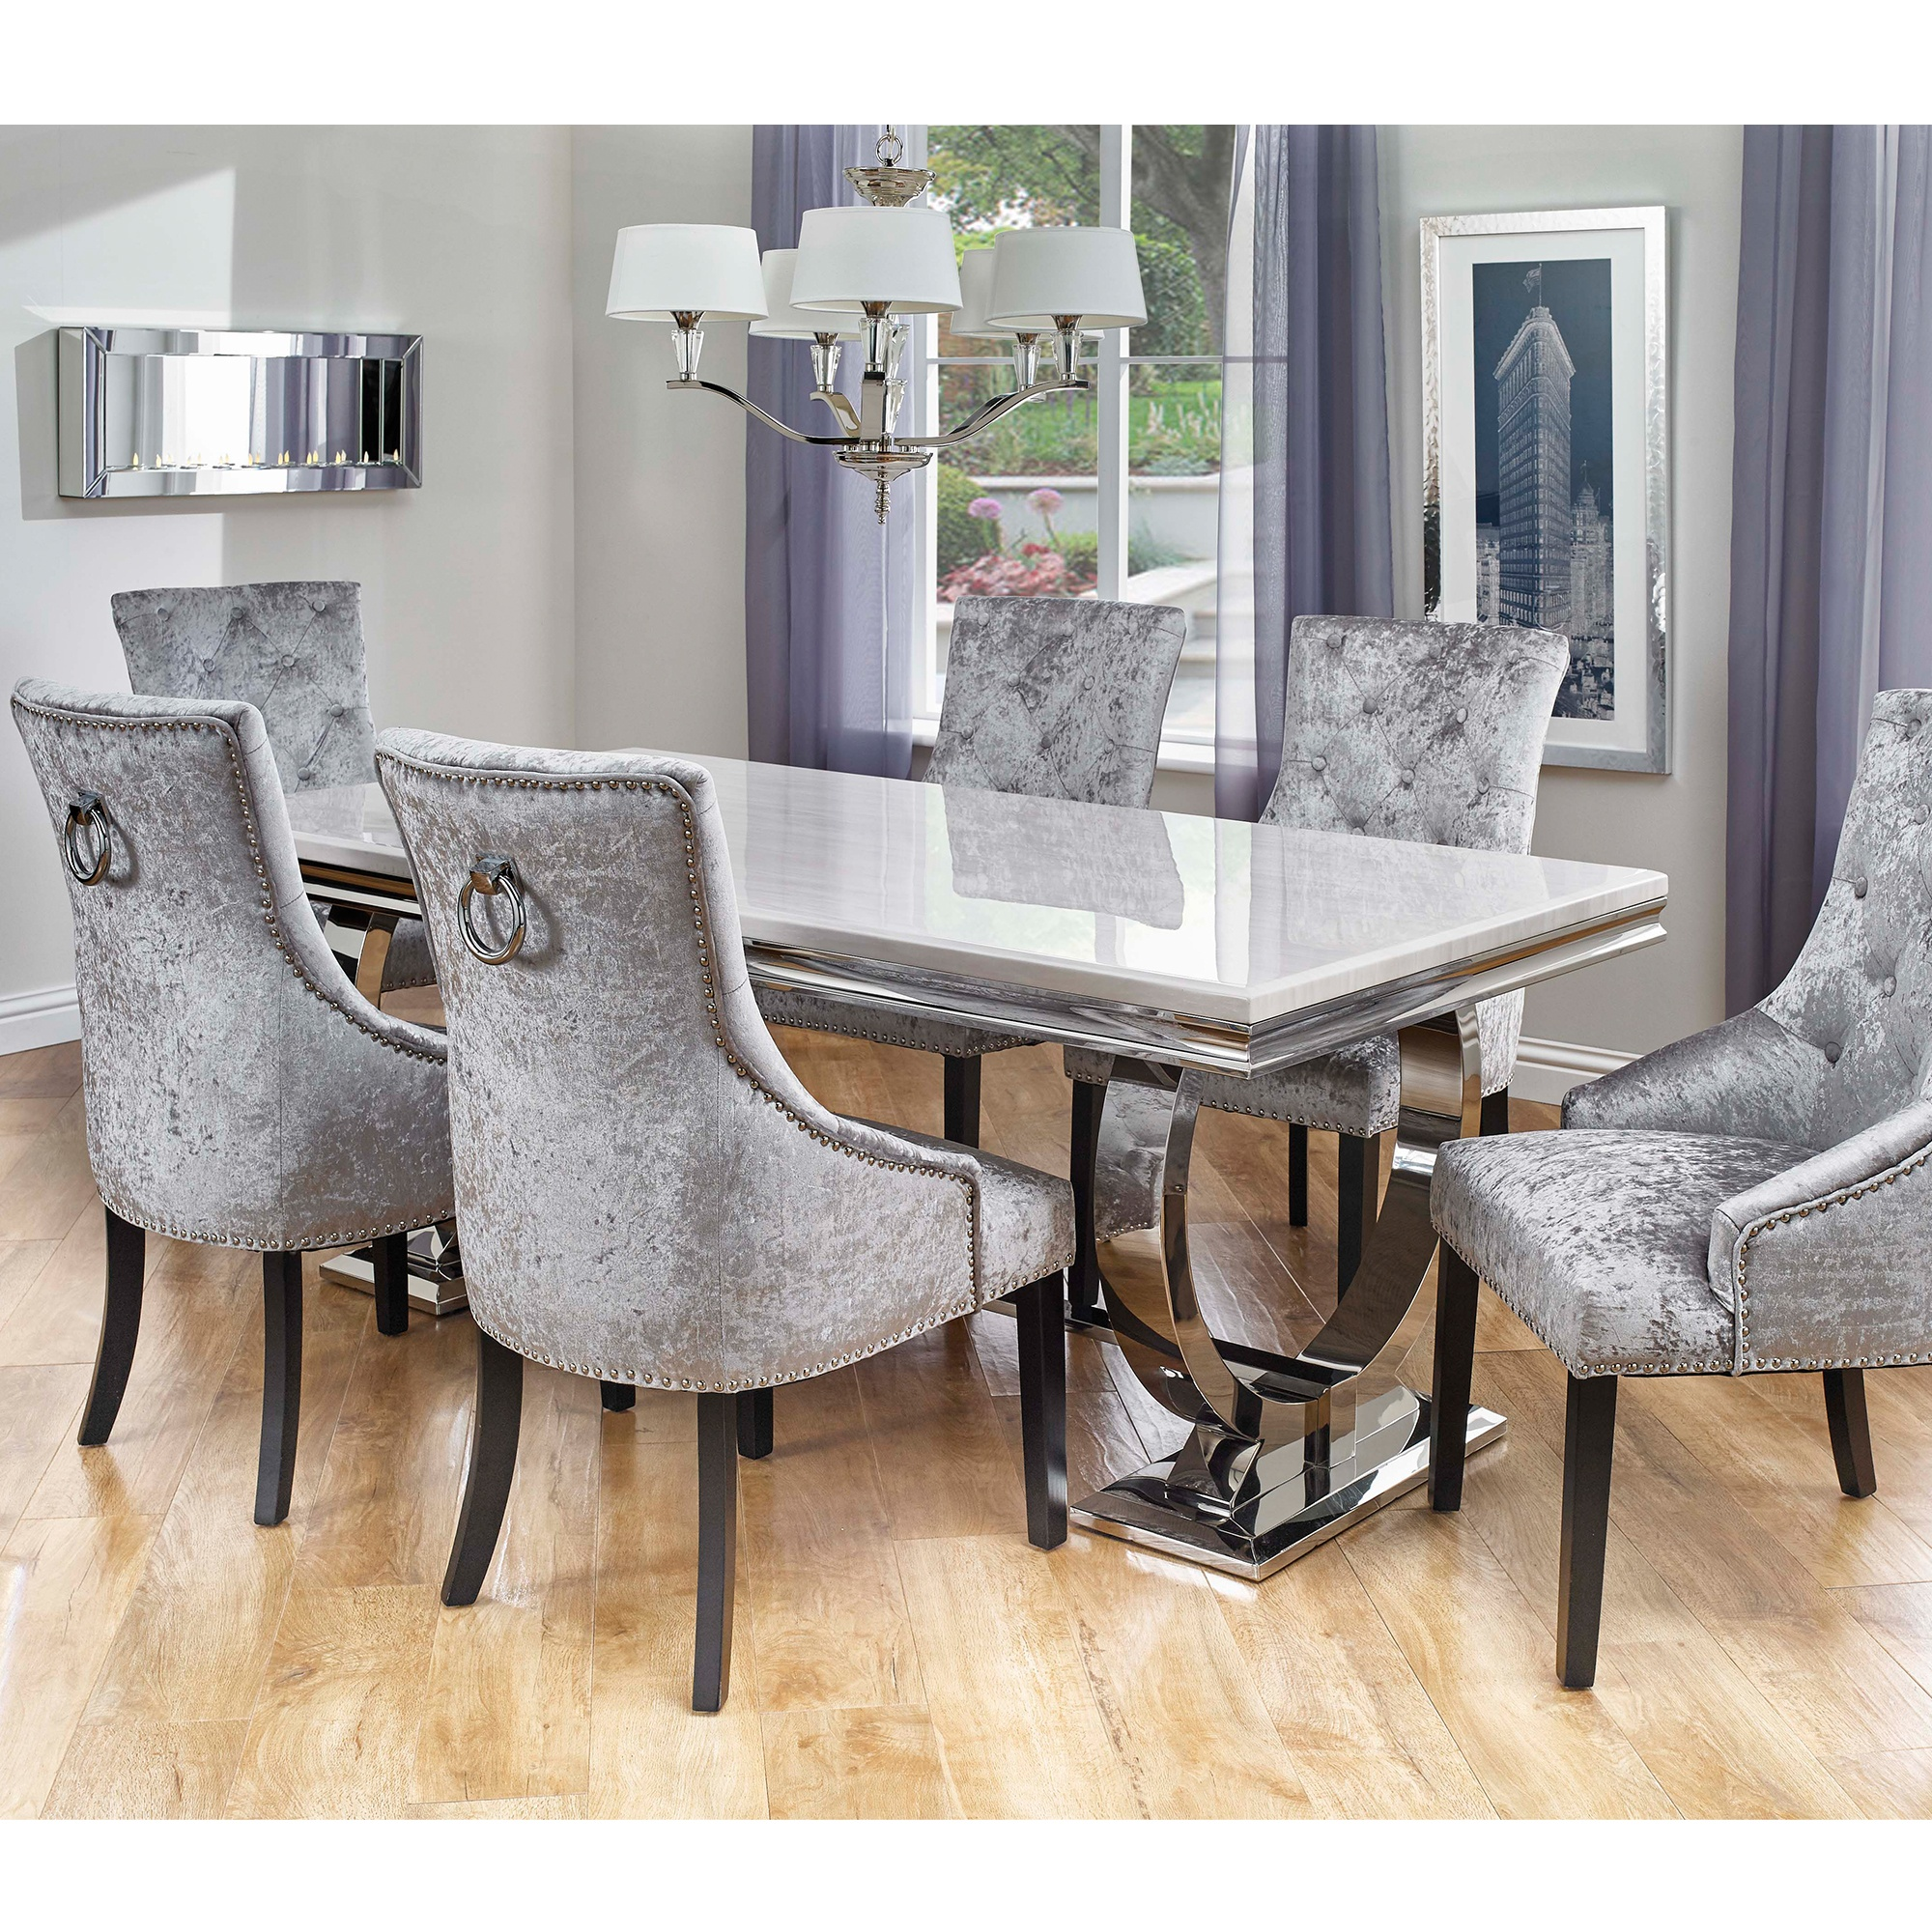 Table And Chair Dining Sets: Cookes Collection Valentina Dining Table And 6 Chairs